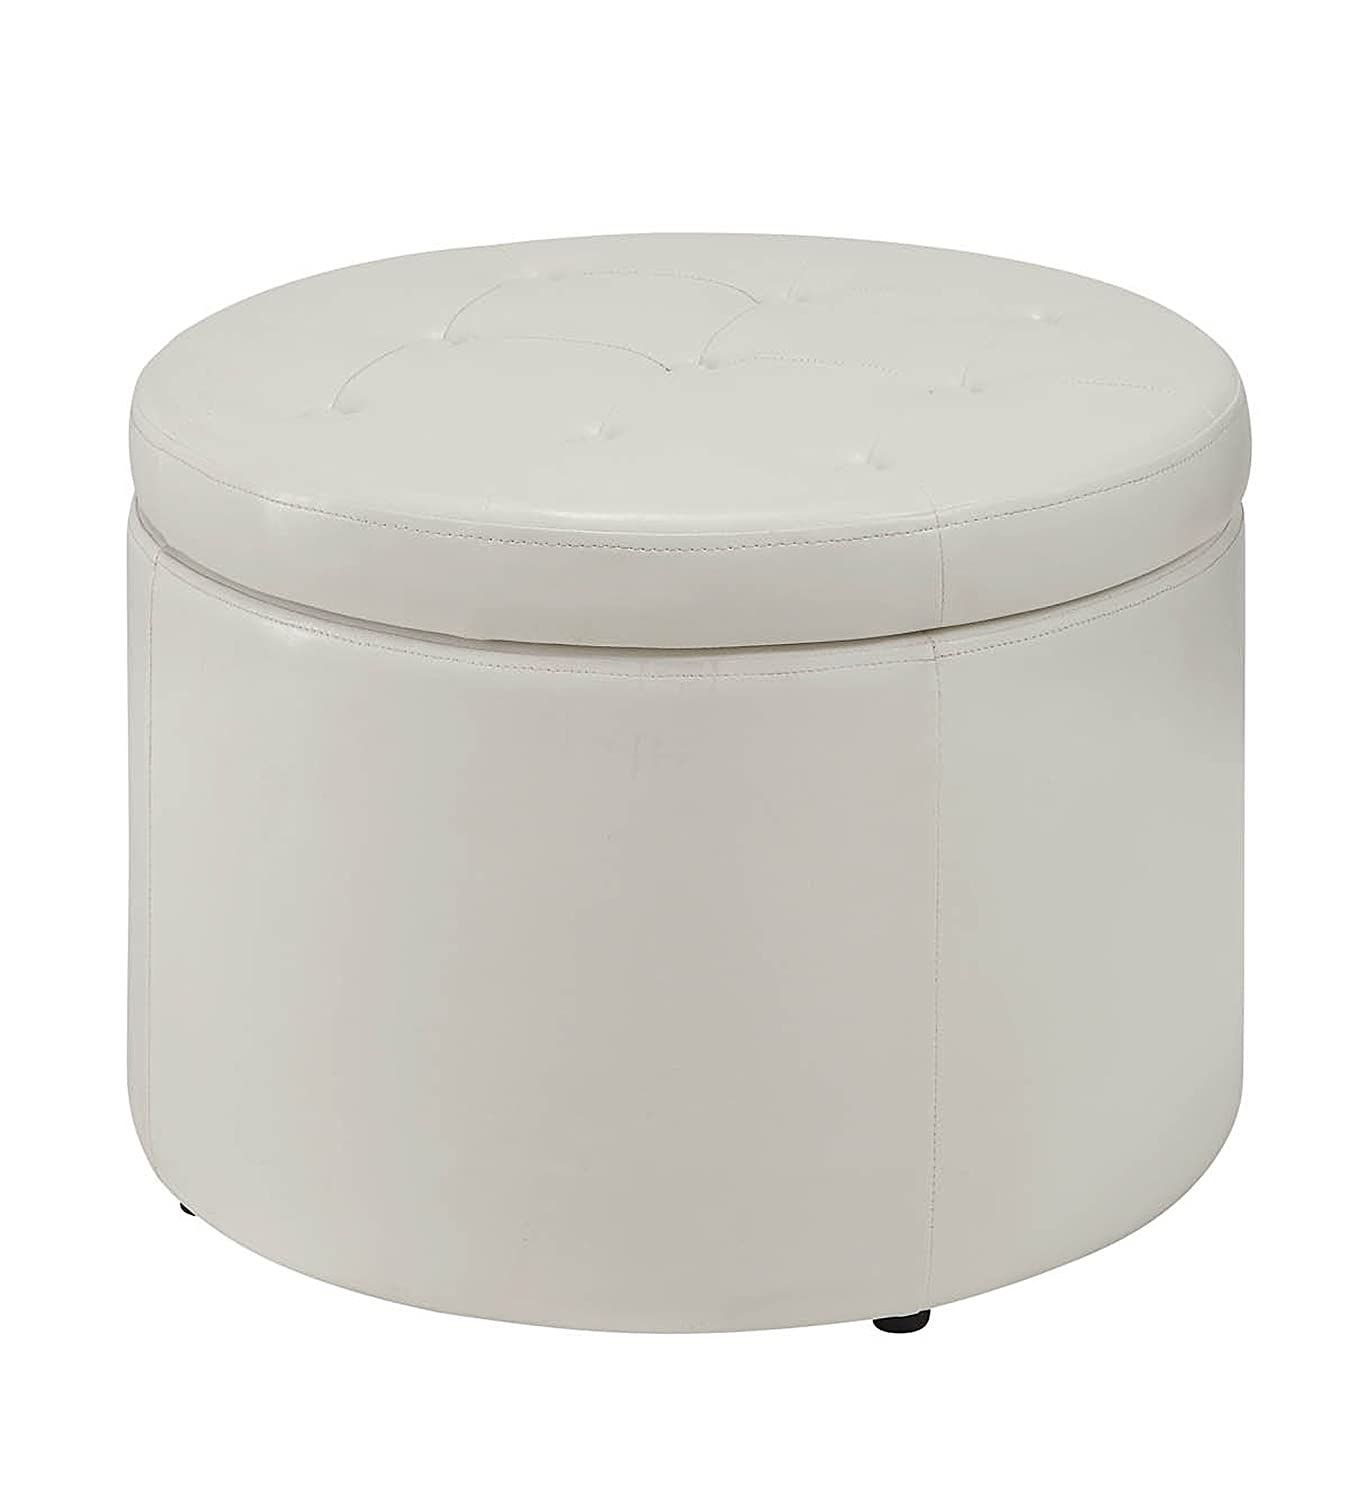 modern storage ottoman. Amazon.com: Convenience Concepts Designs4Comfort Modern Round Shoe Ottoman, Rich Ivory: Kitchen \u0026 Dining Storage Ottoman S